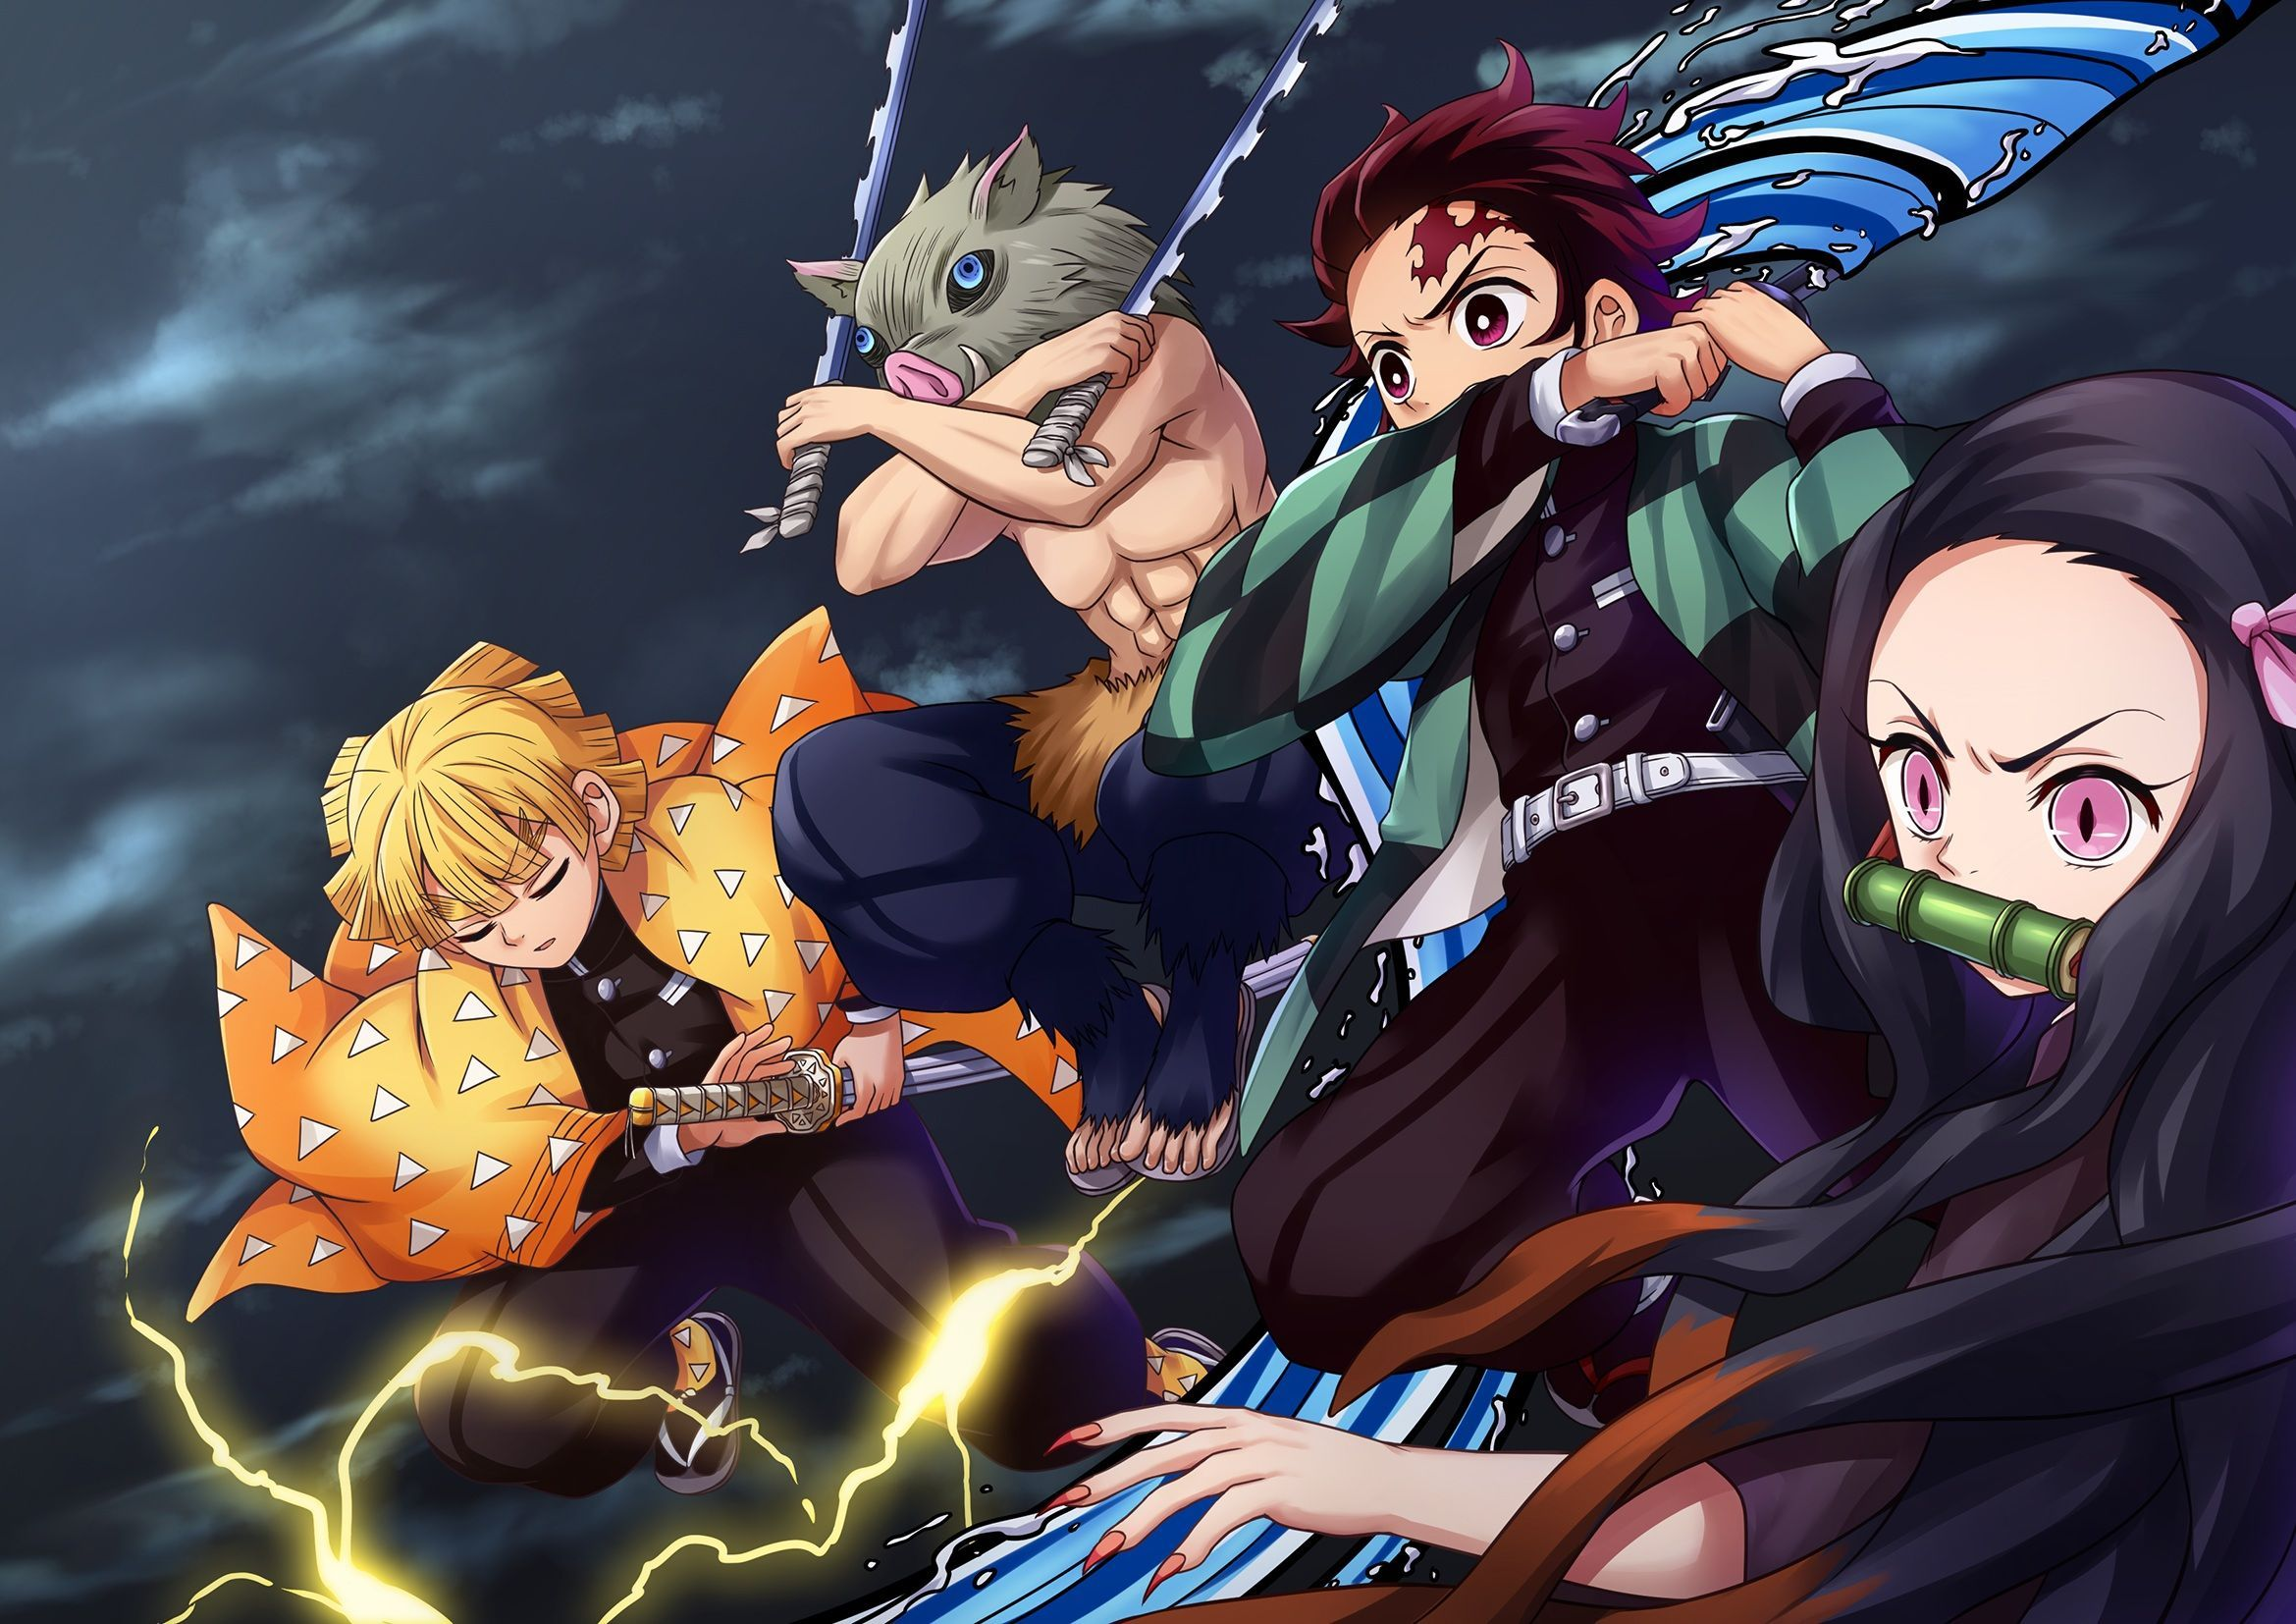 5 Alasan Kamu Wajib Nonton Anime Kimetsu No Yaiba Best Anime Shows Slayer Anime Anime